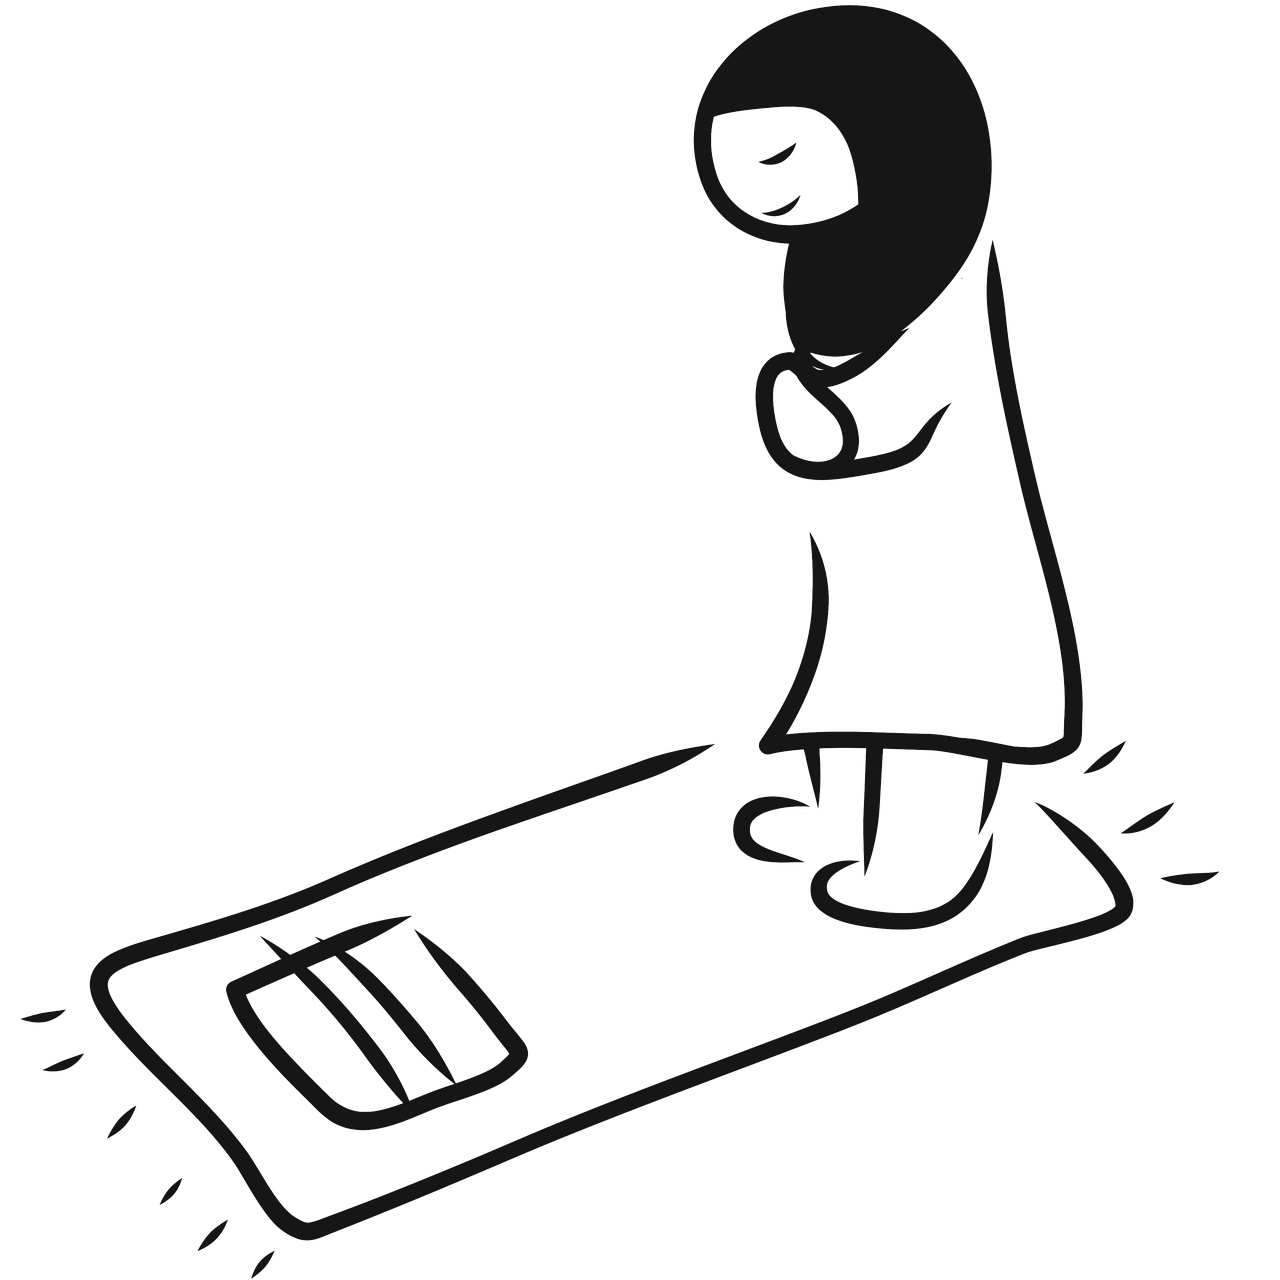 Drawing position praying. Are the prayer positions